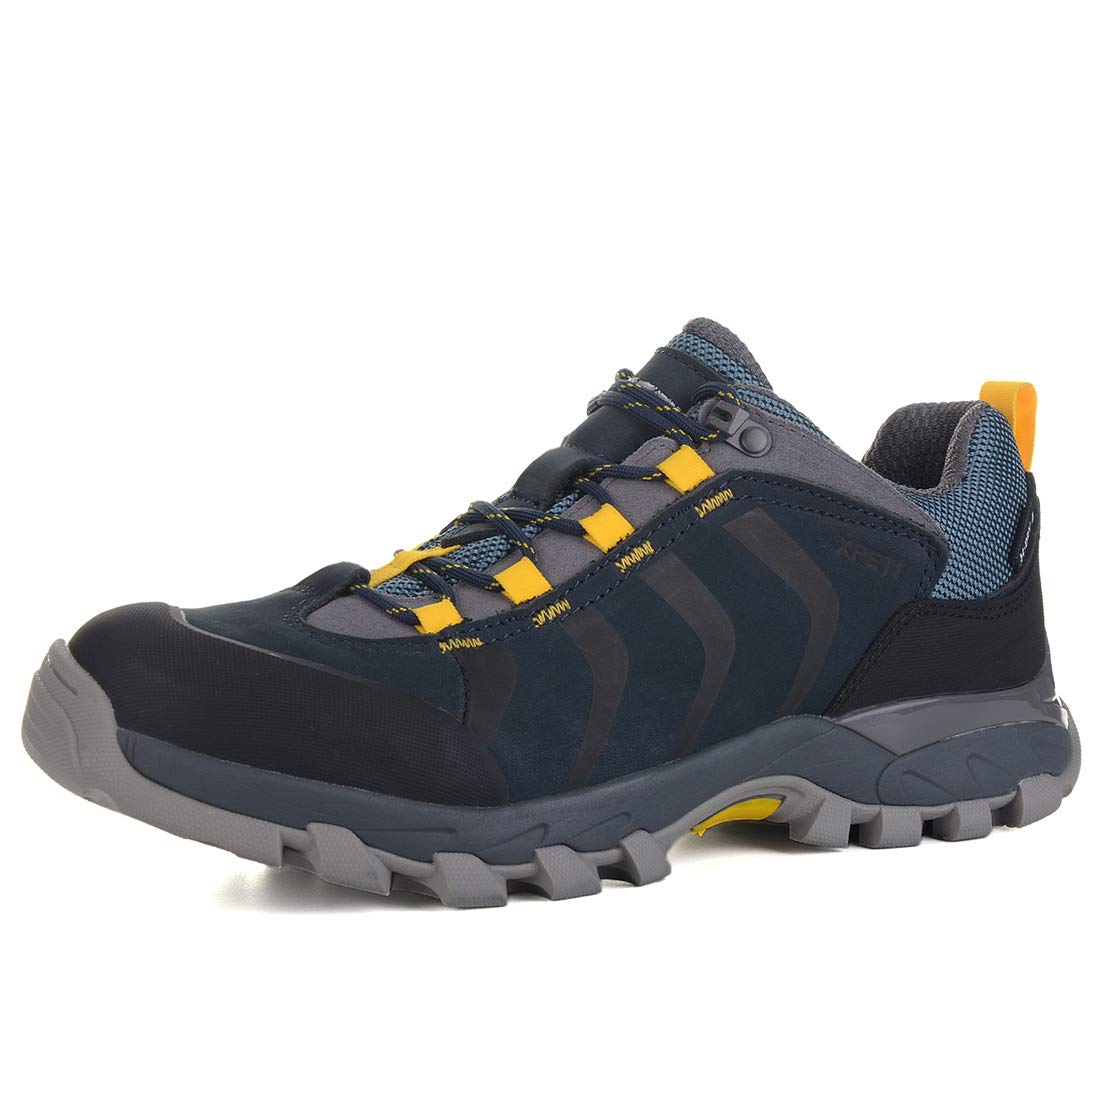 XPETI Men's Vision Water-Resistant Hiking Shoe